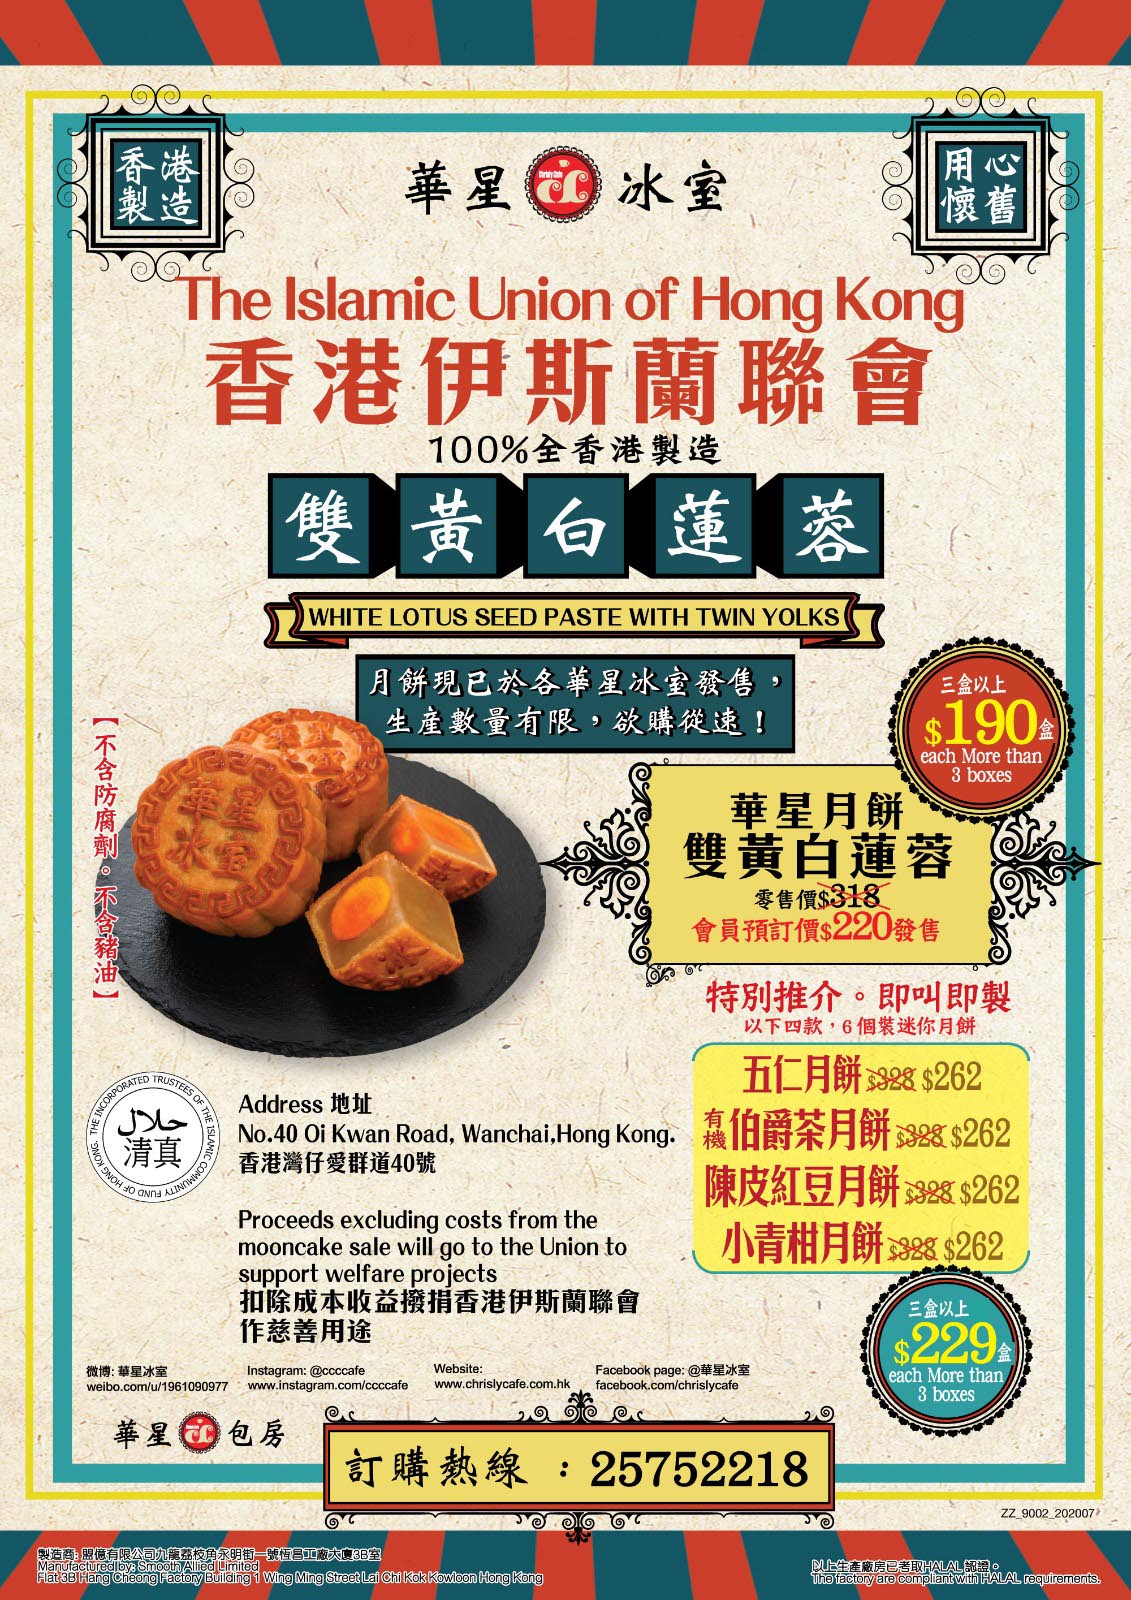 Chrisly Cafe Moon Cake - Islamic Union of Hong Kong's Limited Edition (25/8/2020)